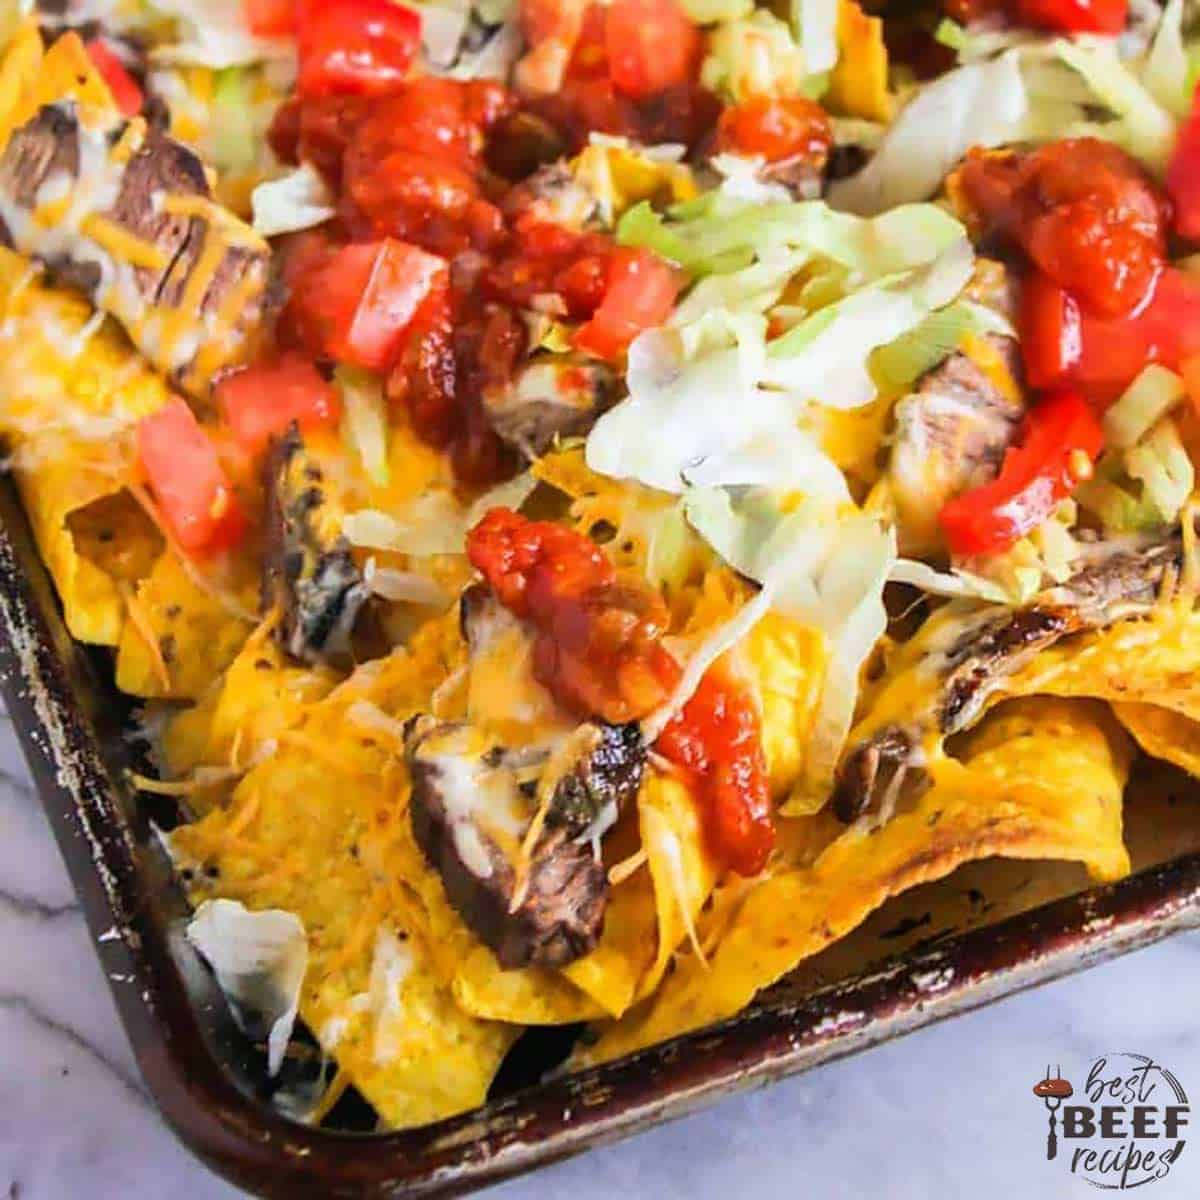 Close up of steak nachos in a sheet pan with slices of steak, lettuce and chopped tomatoes